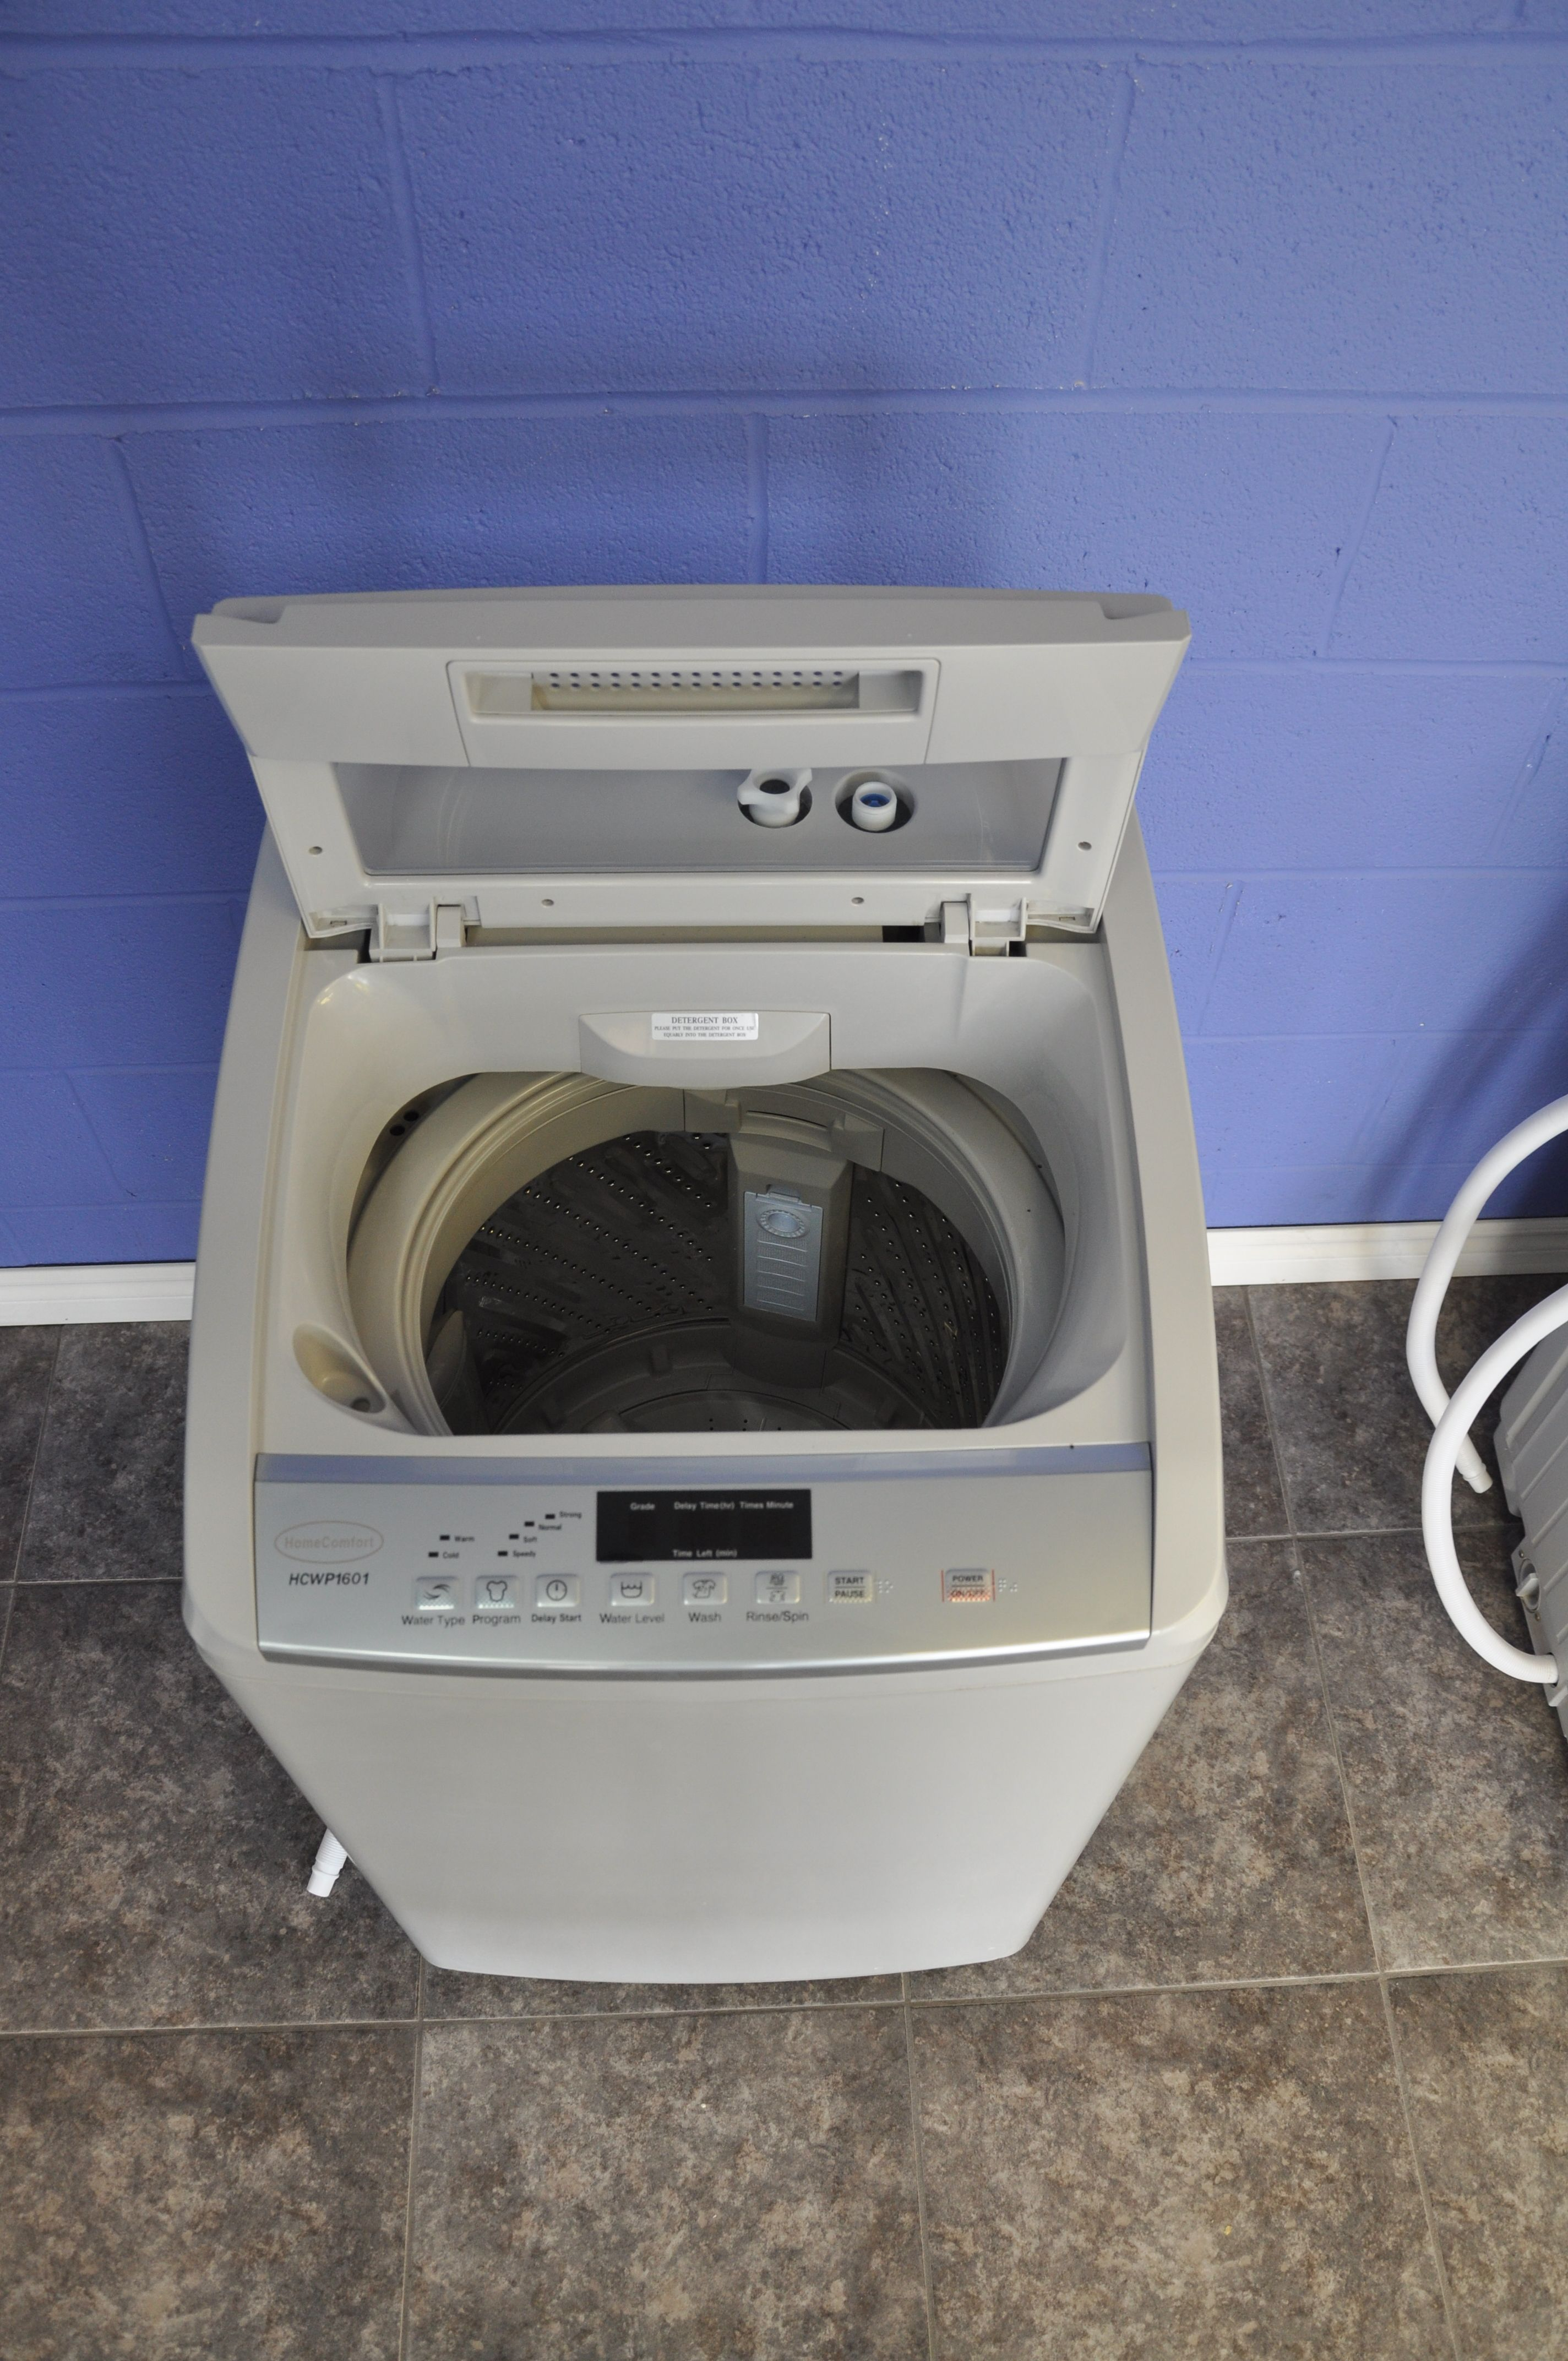 7kg/16 lb Clothes Washer Spacesaving design